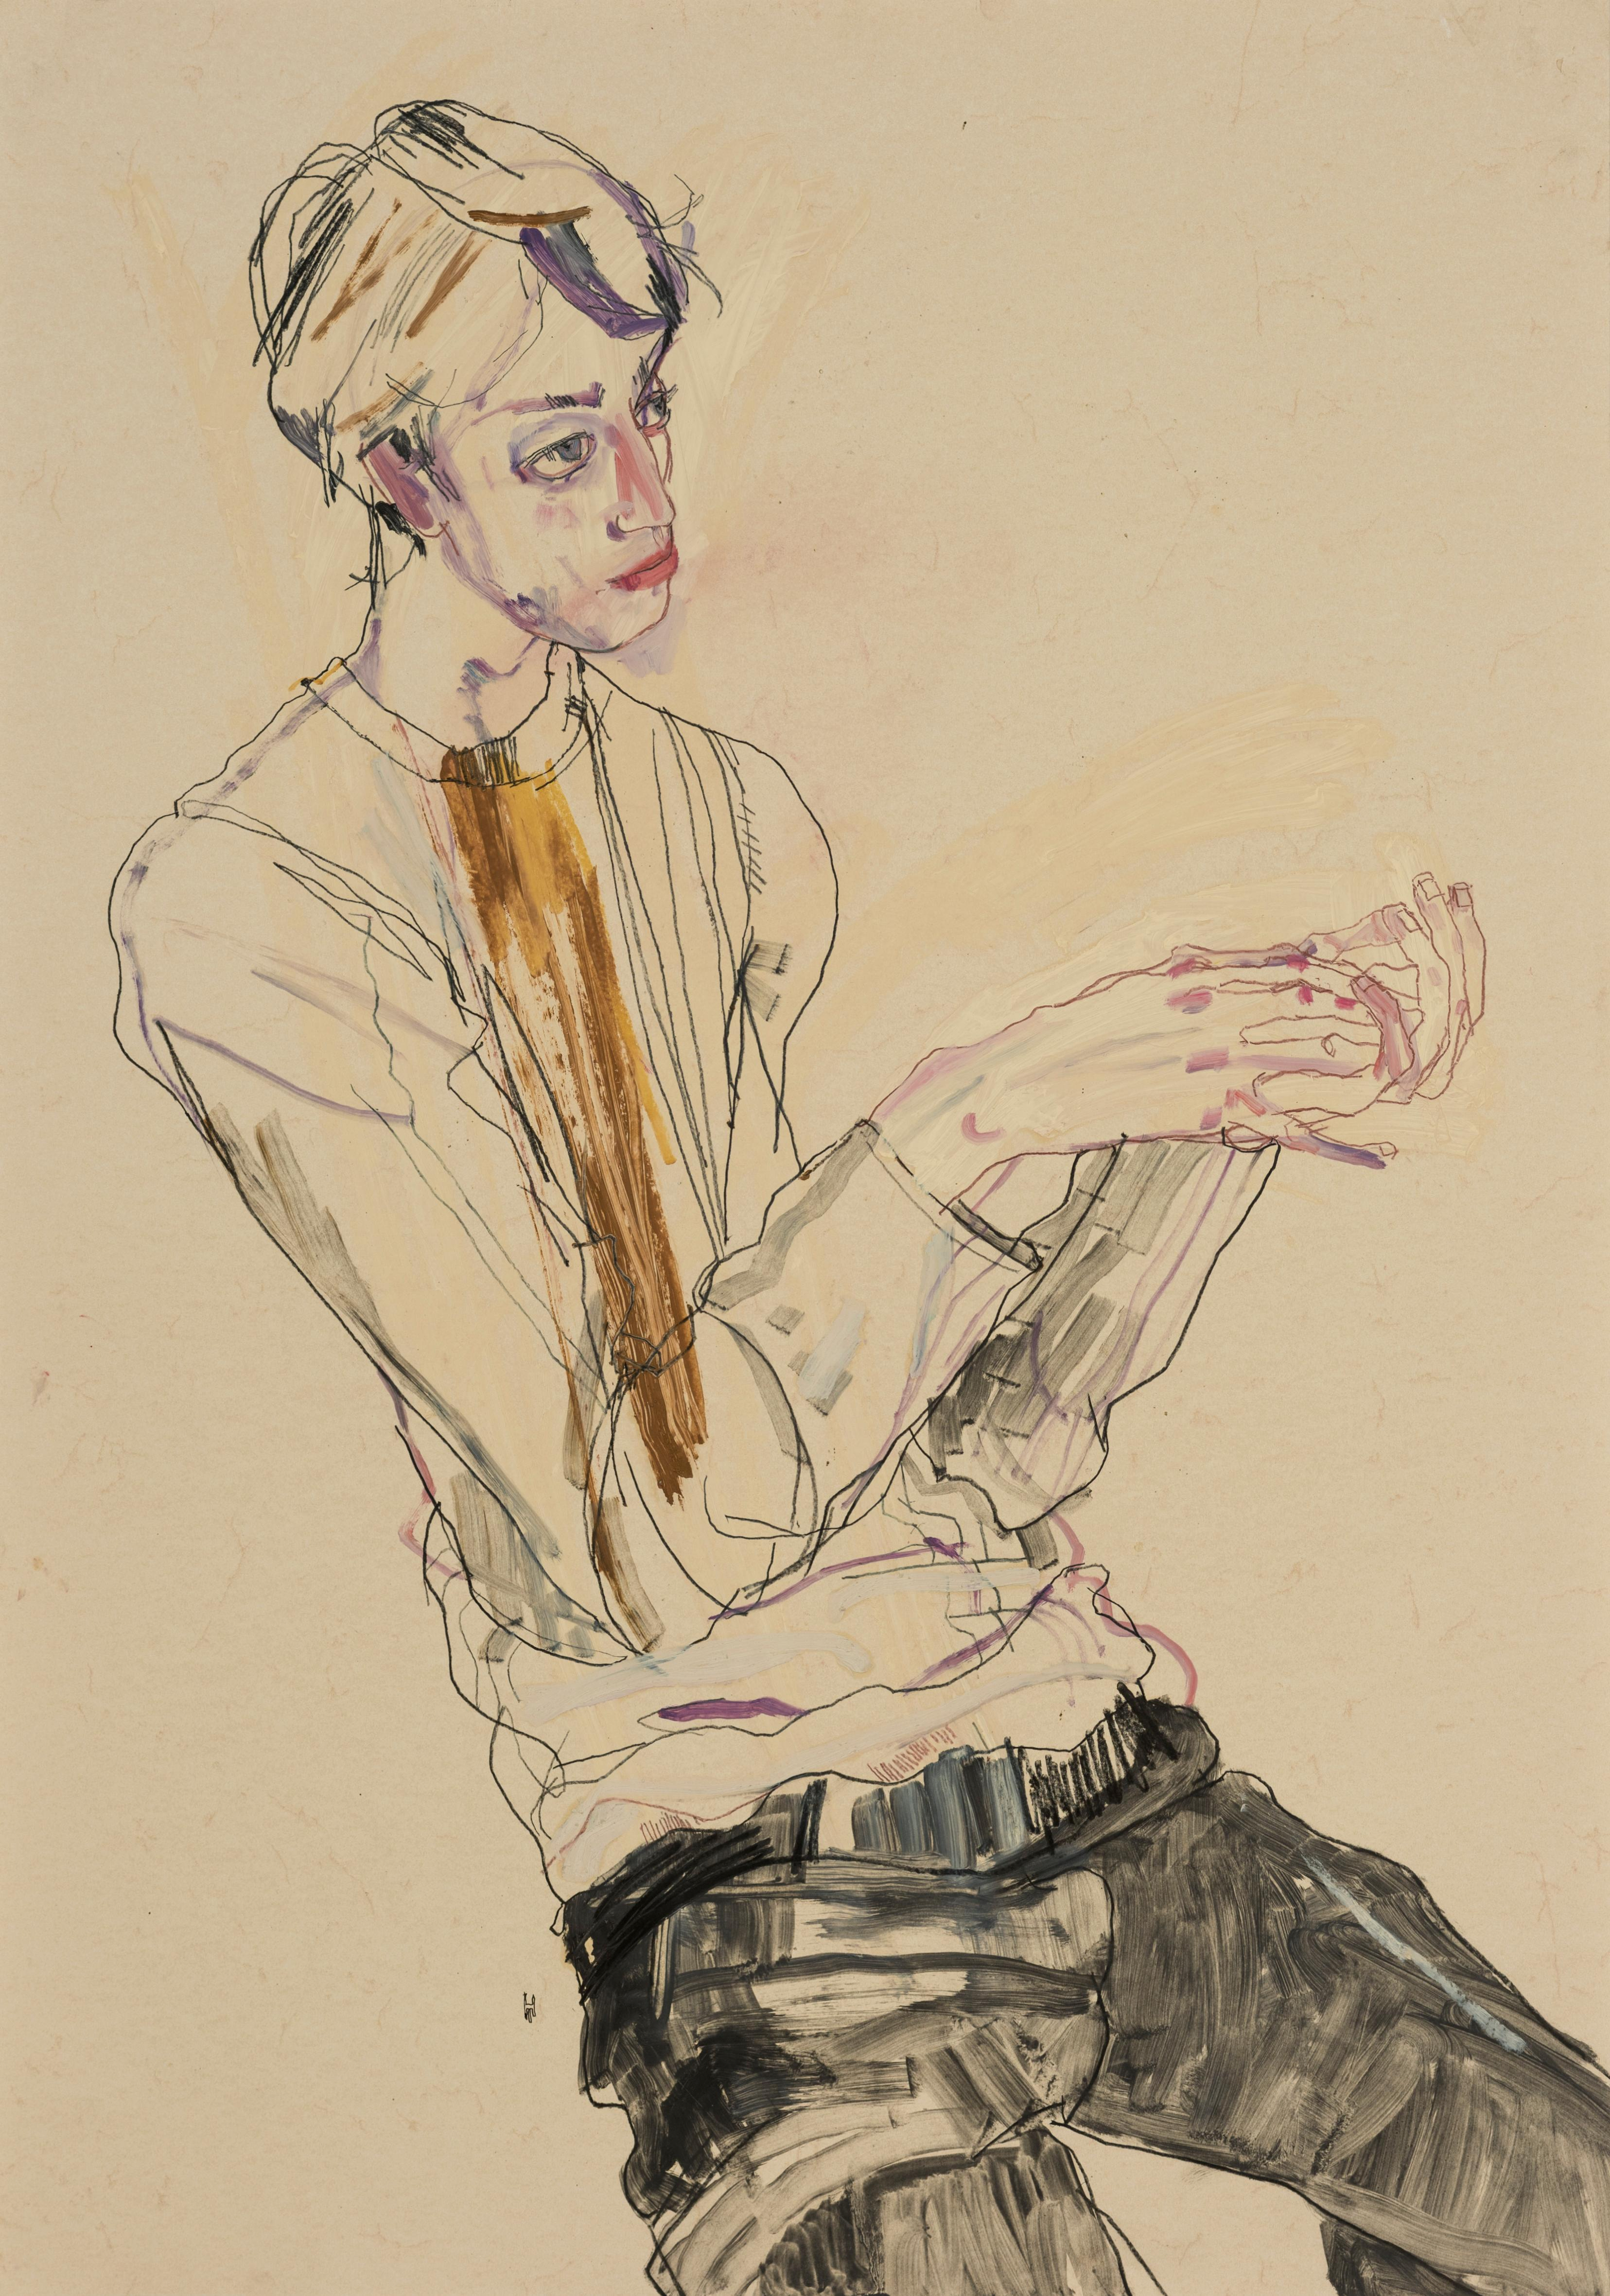 Ben Waters (Seated, Hand Holding), Mixed media on Pergamenata parchment